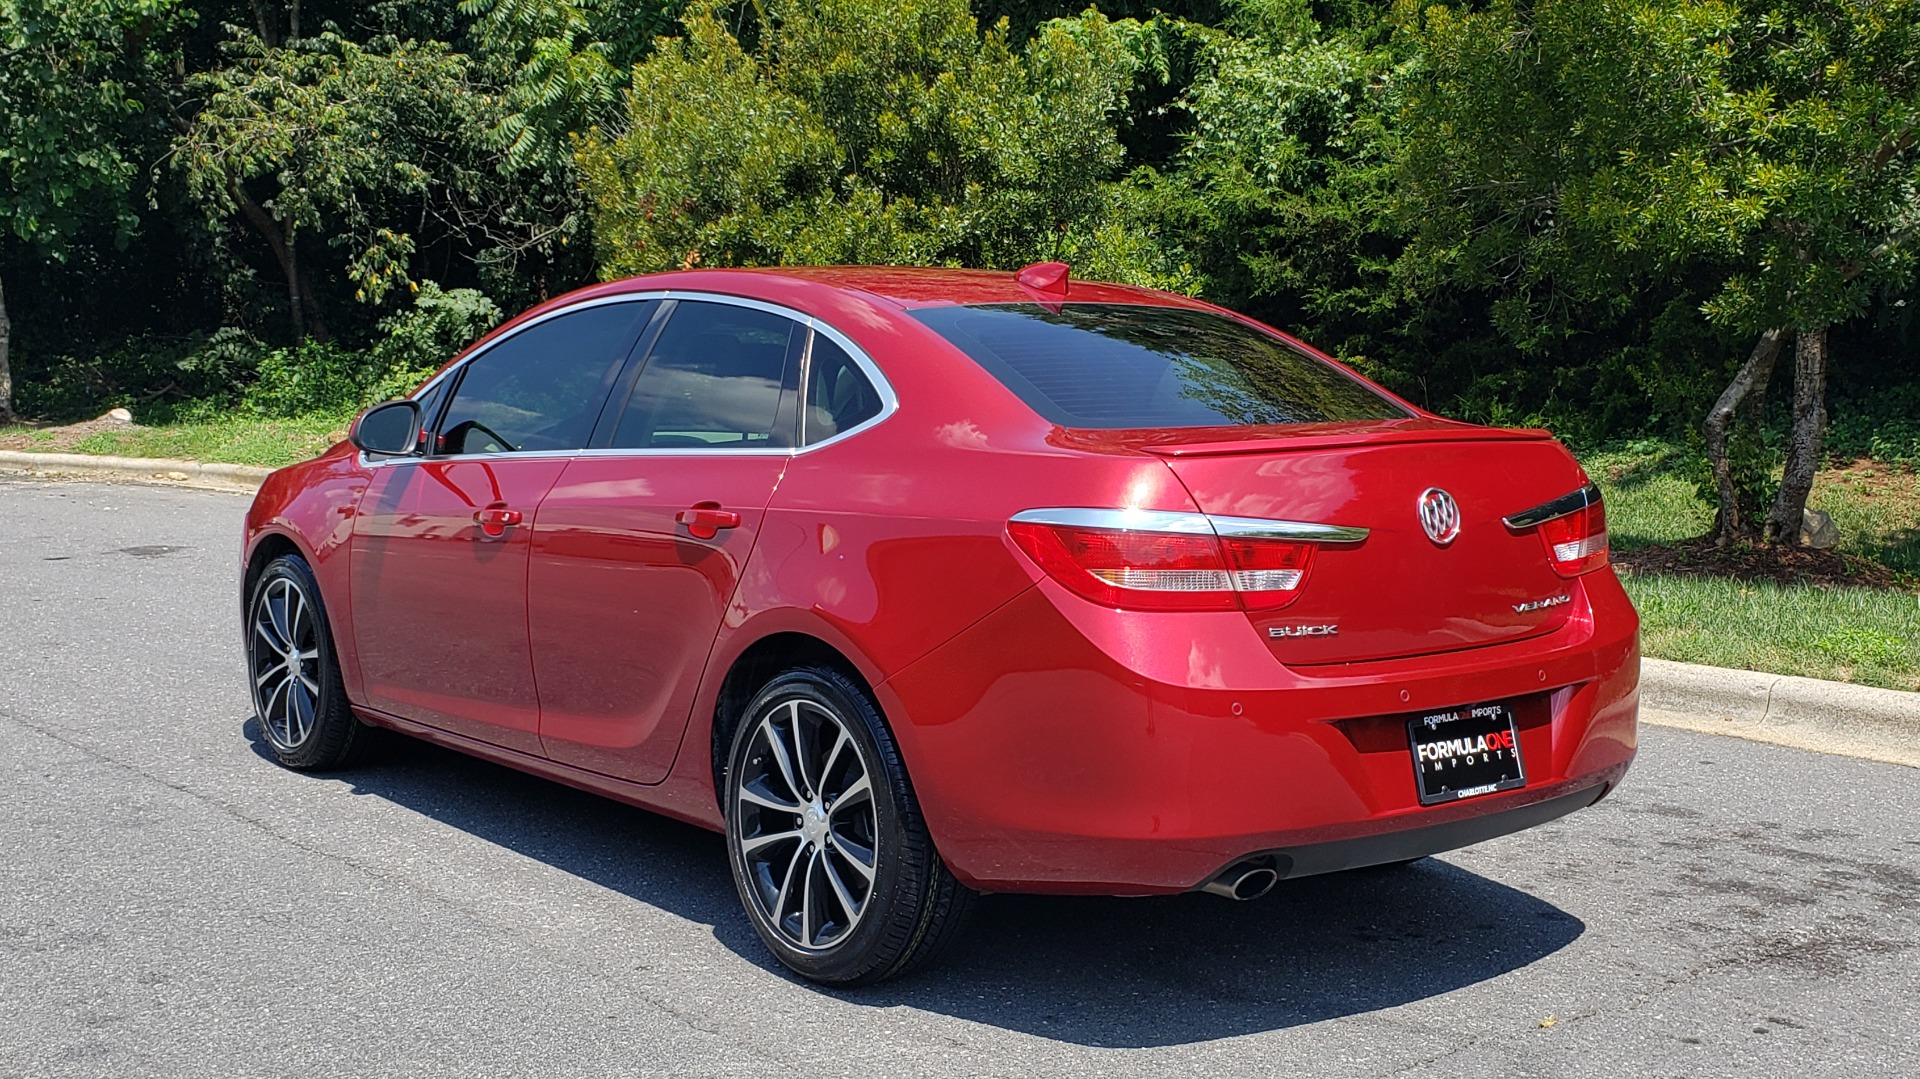 Used 2016 Buick VERANO SPORT TOURING / SUNROOF / HTD STS / 18IN WHEELS / REARVIEW for sale Sold at Formula Imports in Charlotte NC 28227 3